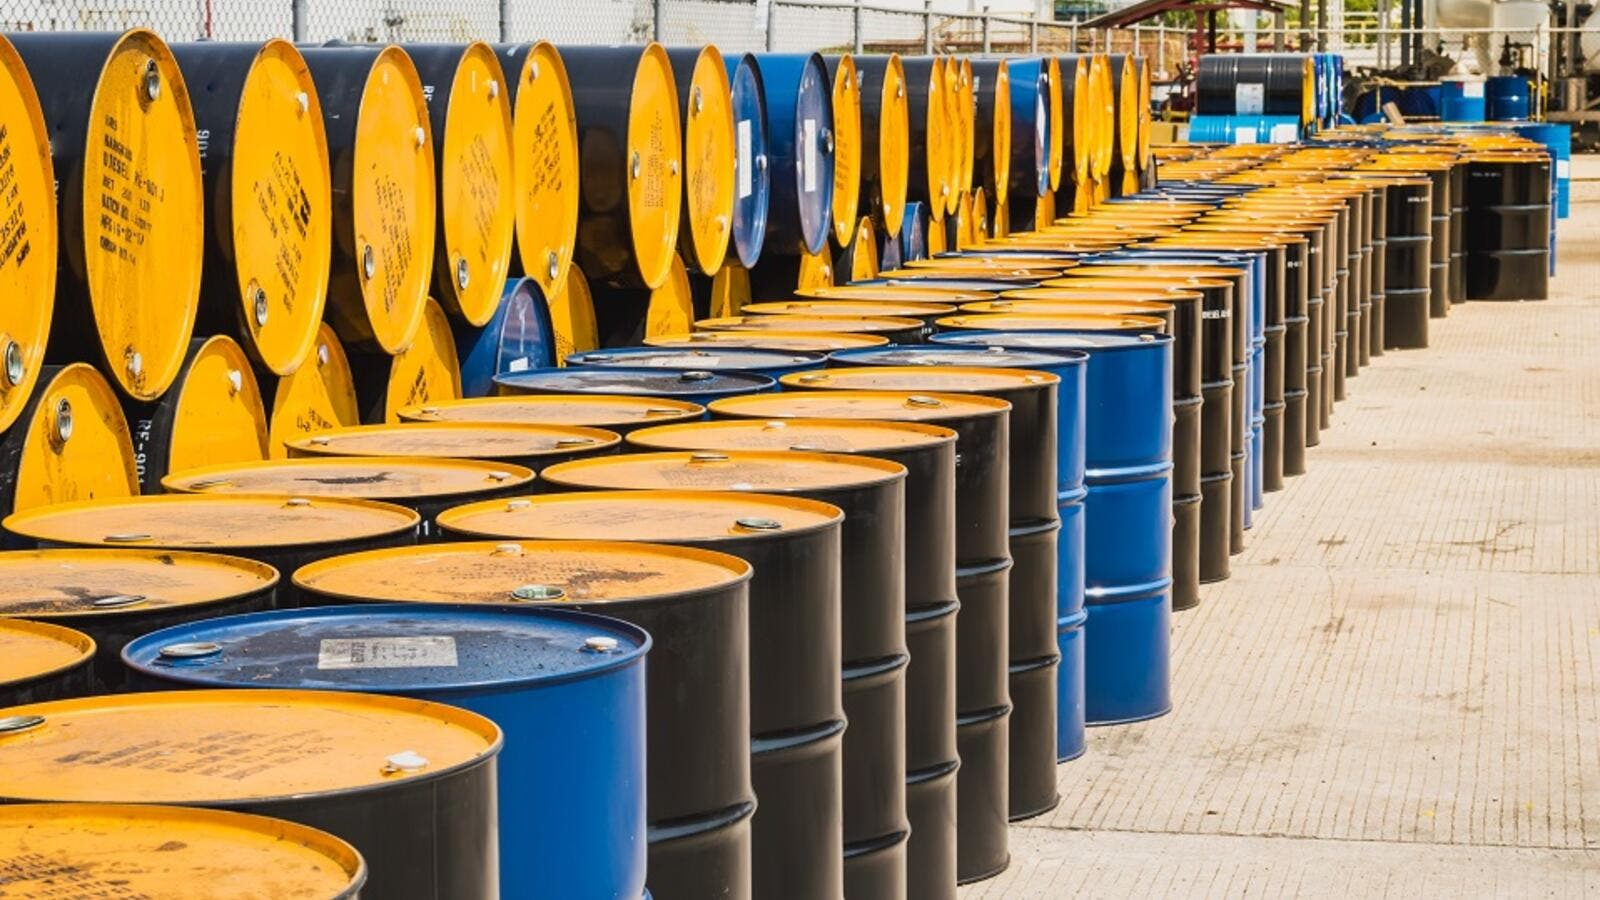 South Sudan will pump an additional 70,000 barrels per day of crude oil next June. (Shutterstock)